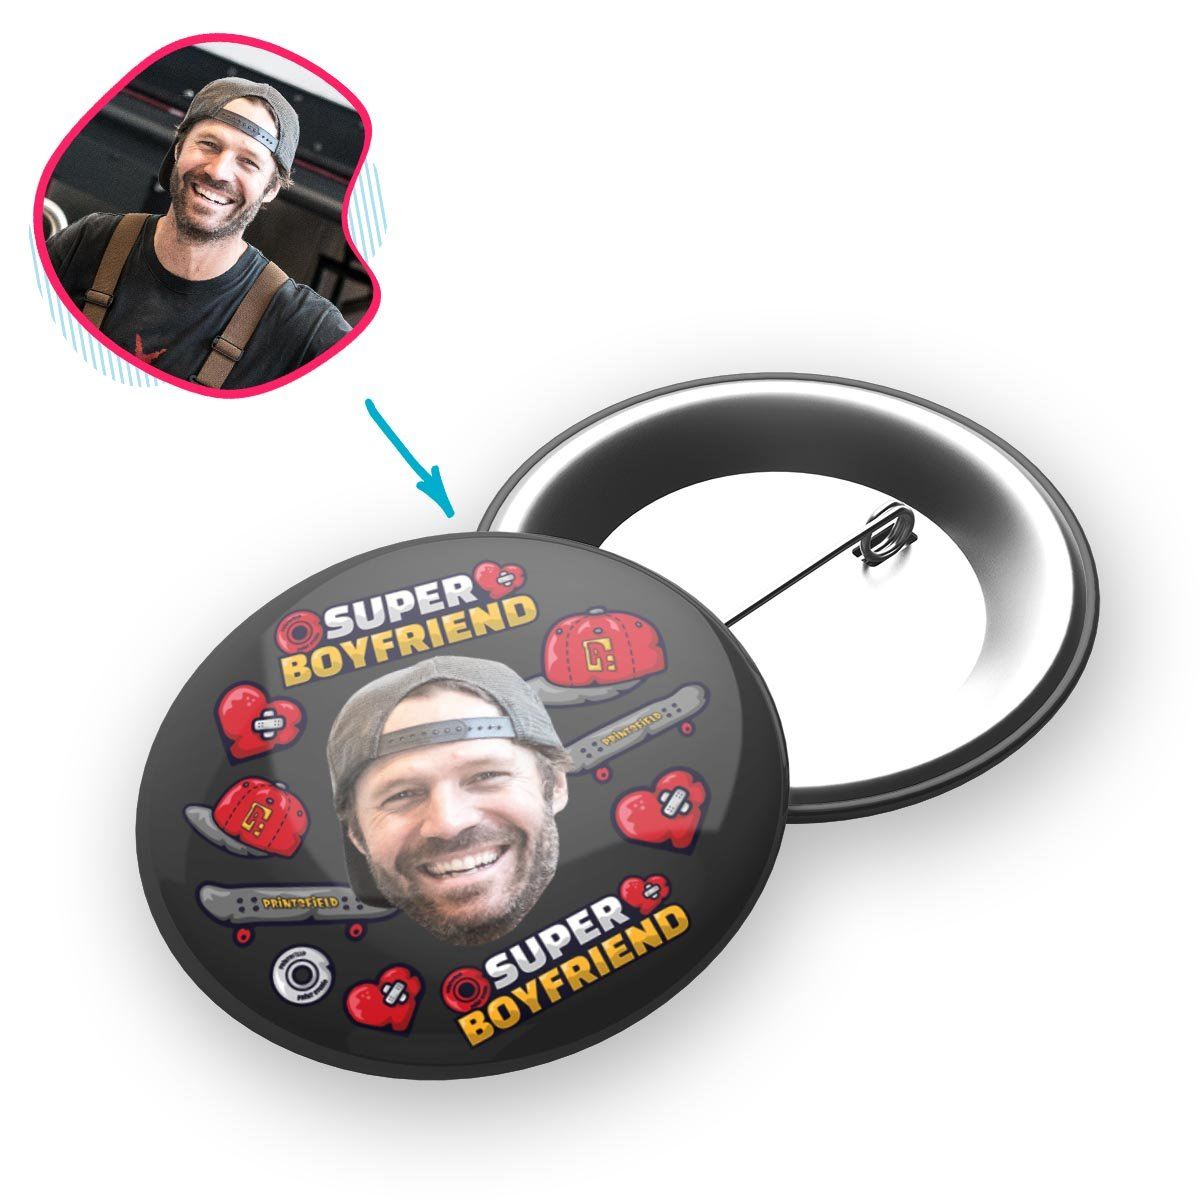 Dark Boyfriend personalized pin with photo of face printed on it